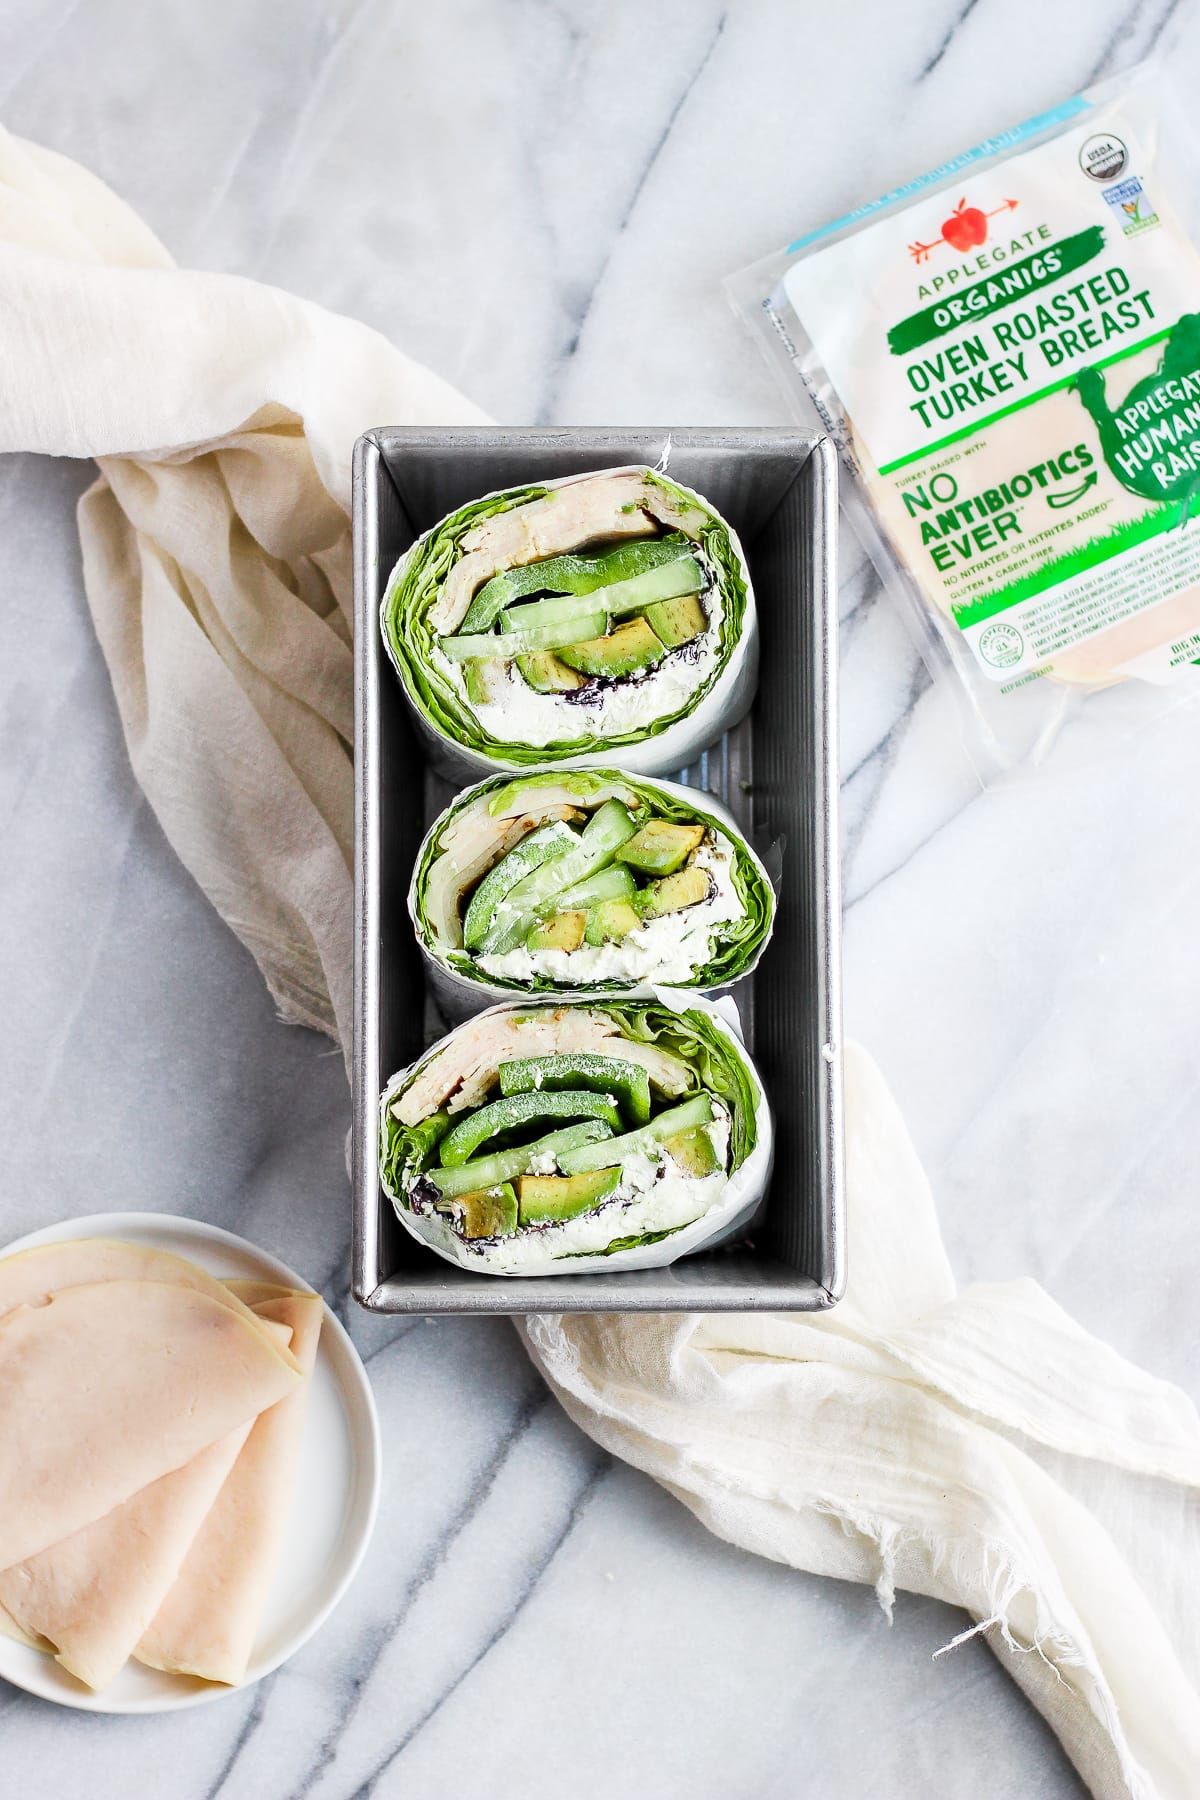 Herby Green Monster Lettuce Wrap - a quick, easy and delicious lunch or dinner option! #easyweeknight, #whole30 #lettucewrap